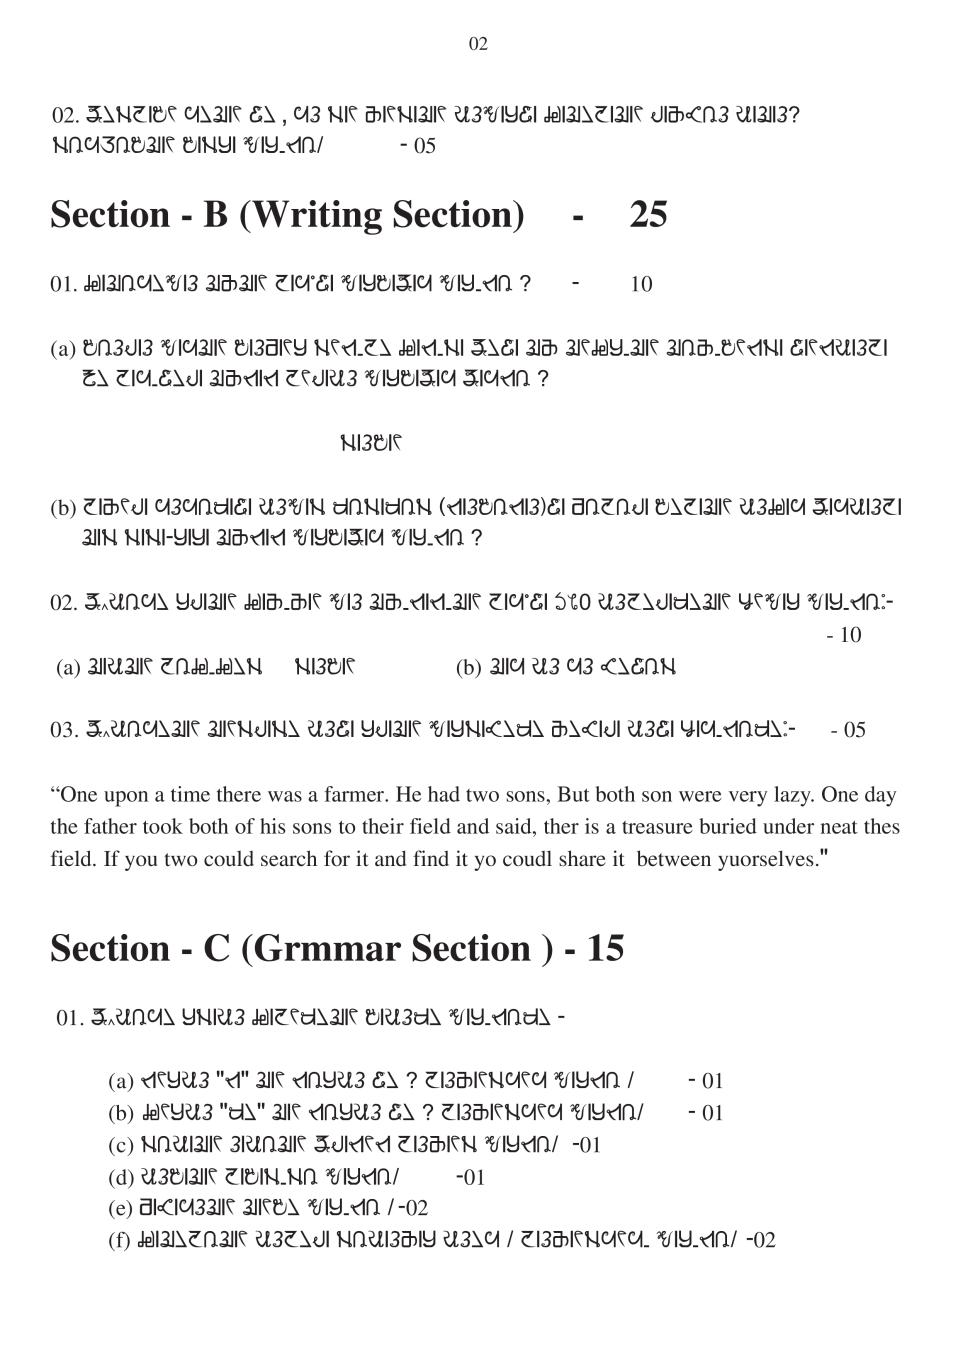 CBSE Sample Papers 2020 for Class 10 – Rai Language